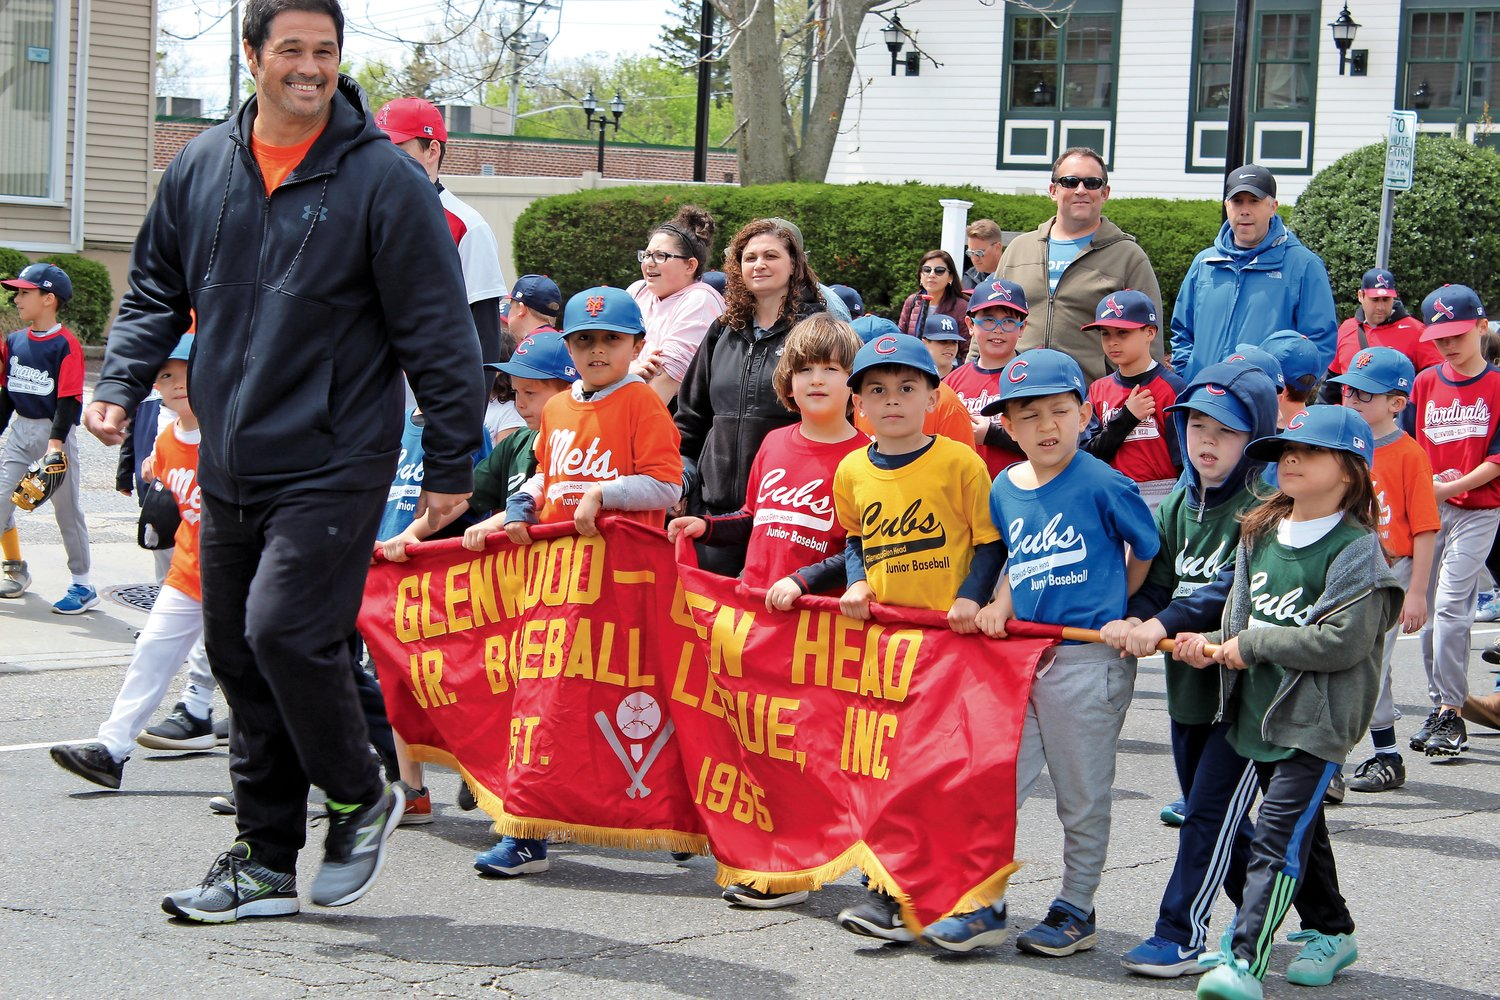 Coach Billy Golden, of Glen Head, led some pint-sized sluggers on the parade route.